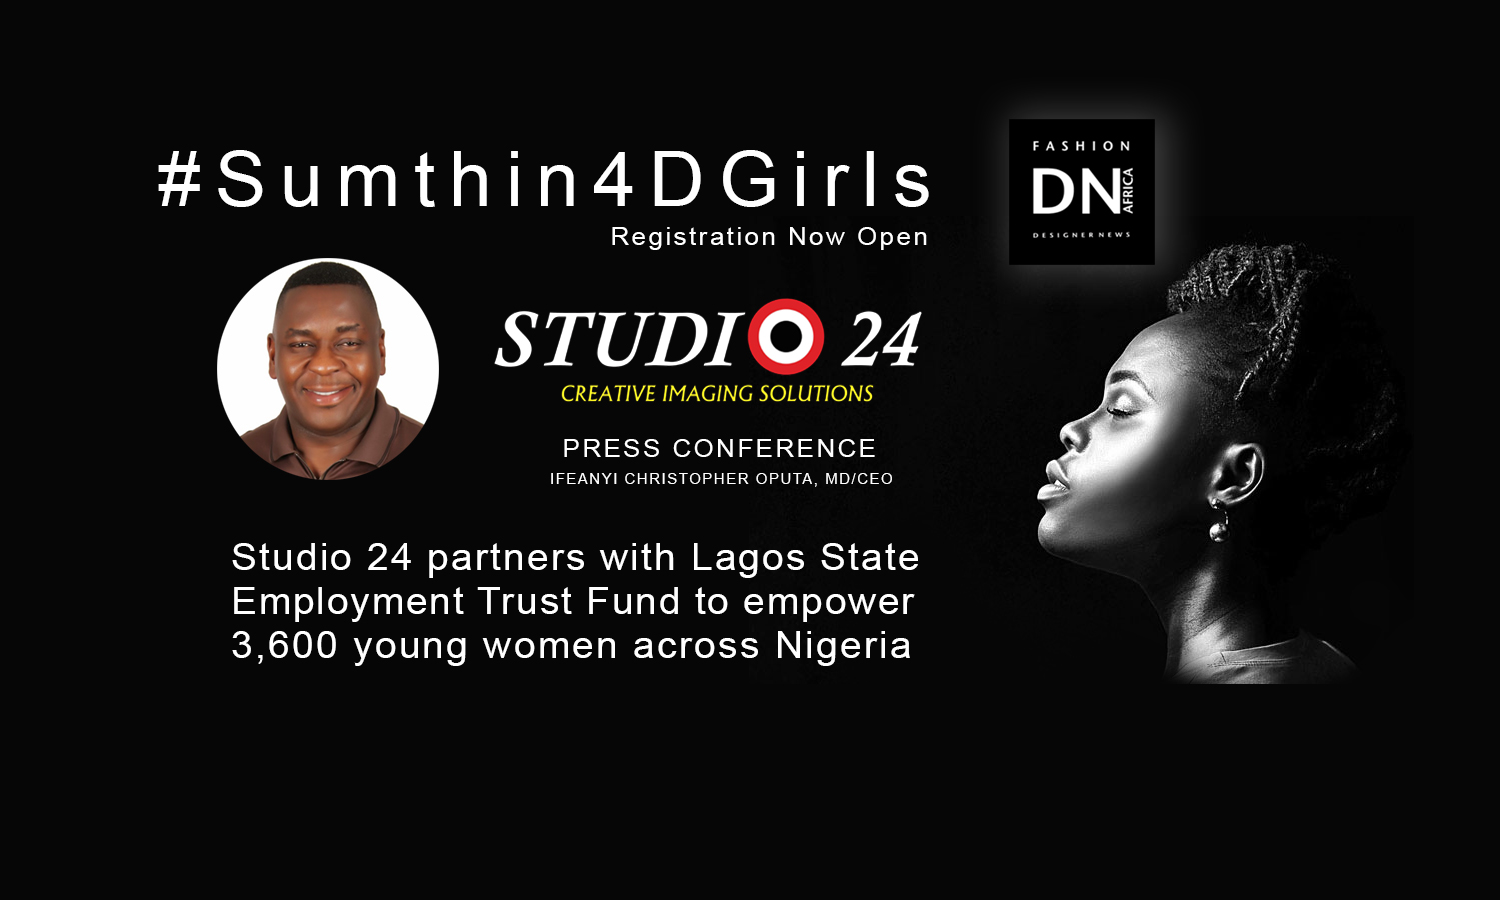 dnafrica-sumthin4Dgirls-studio24-nigeria-press-conference